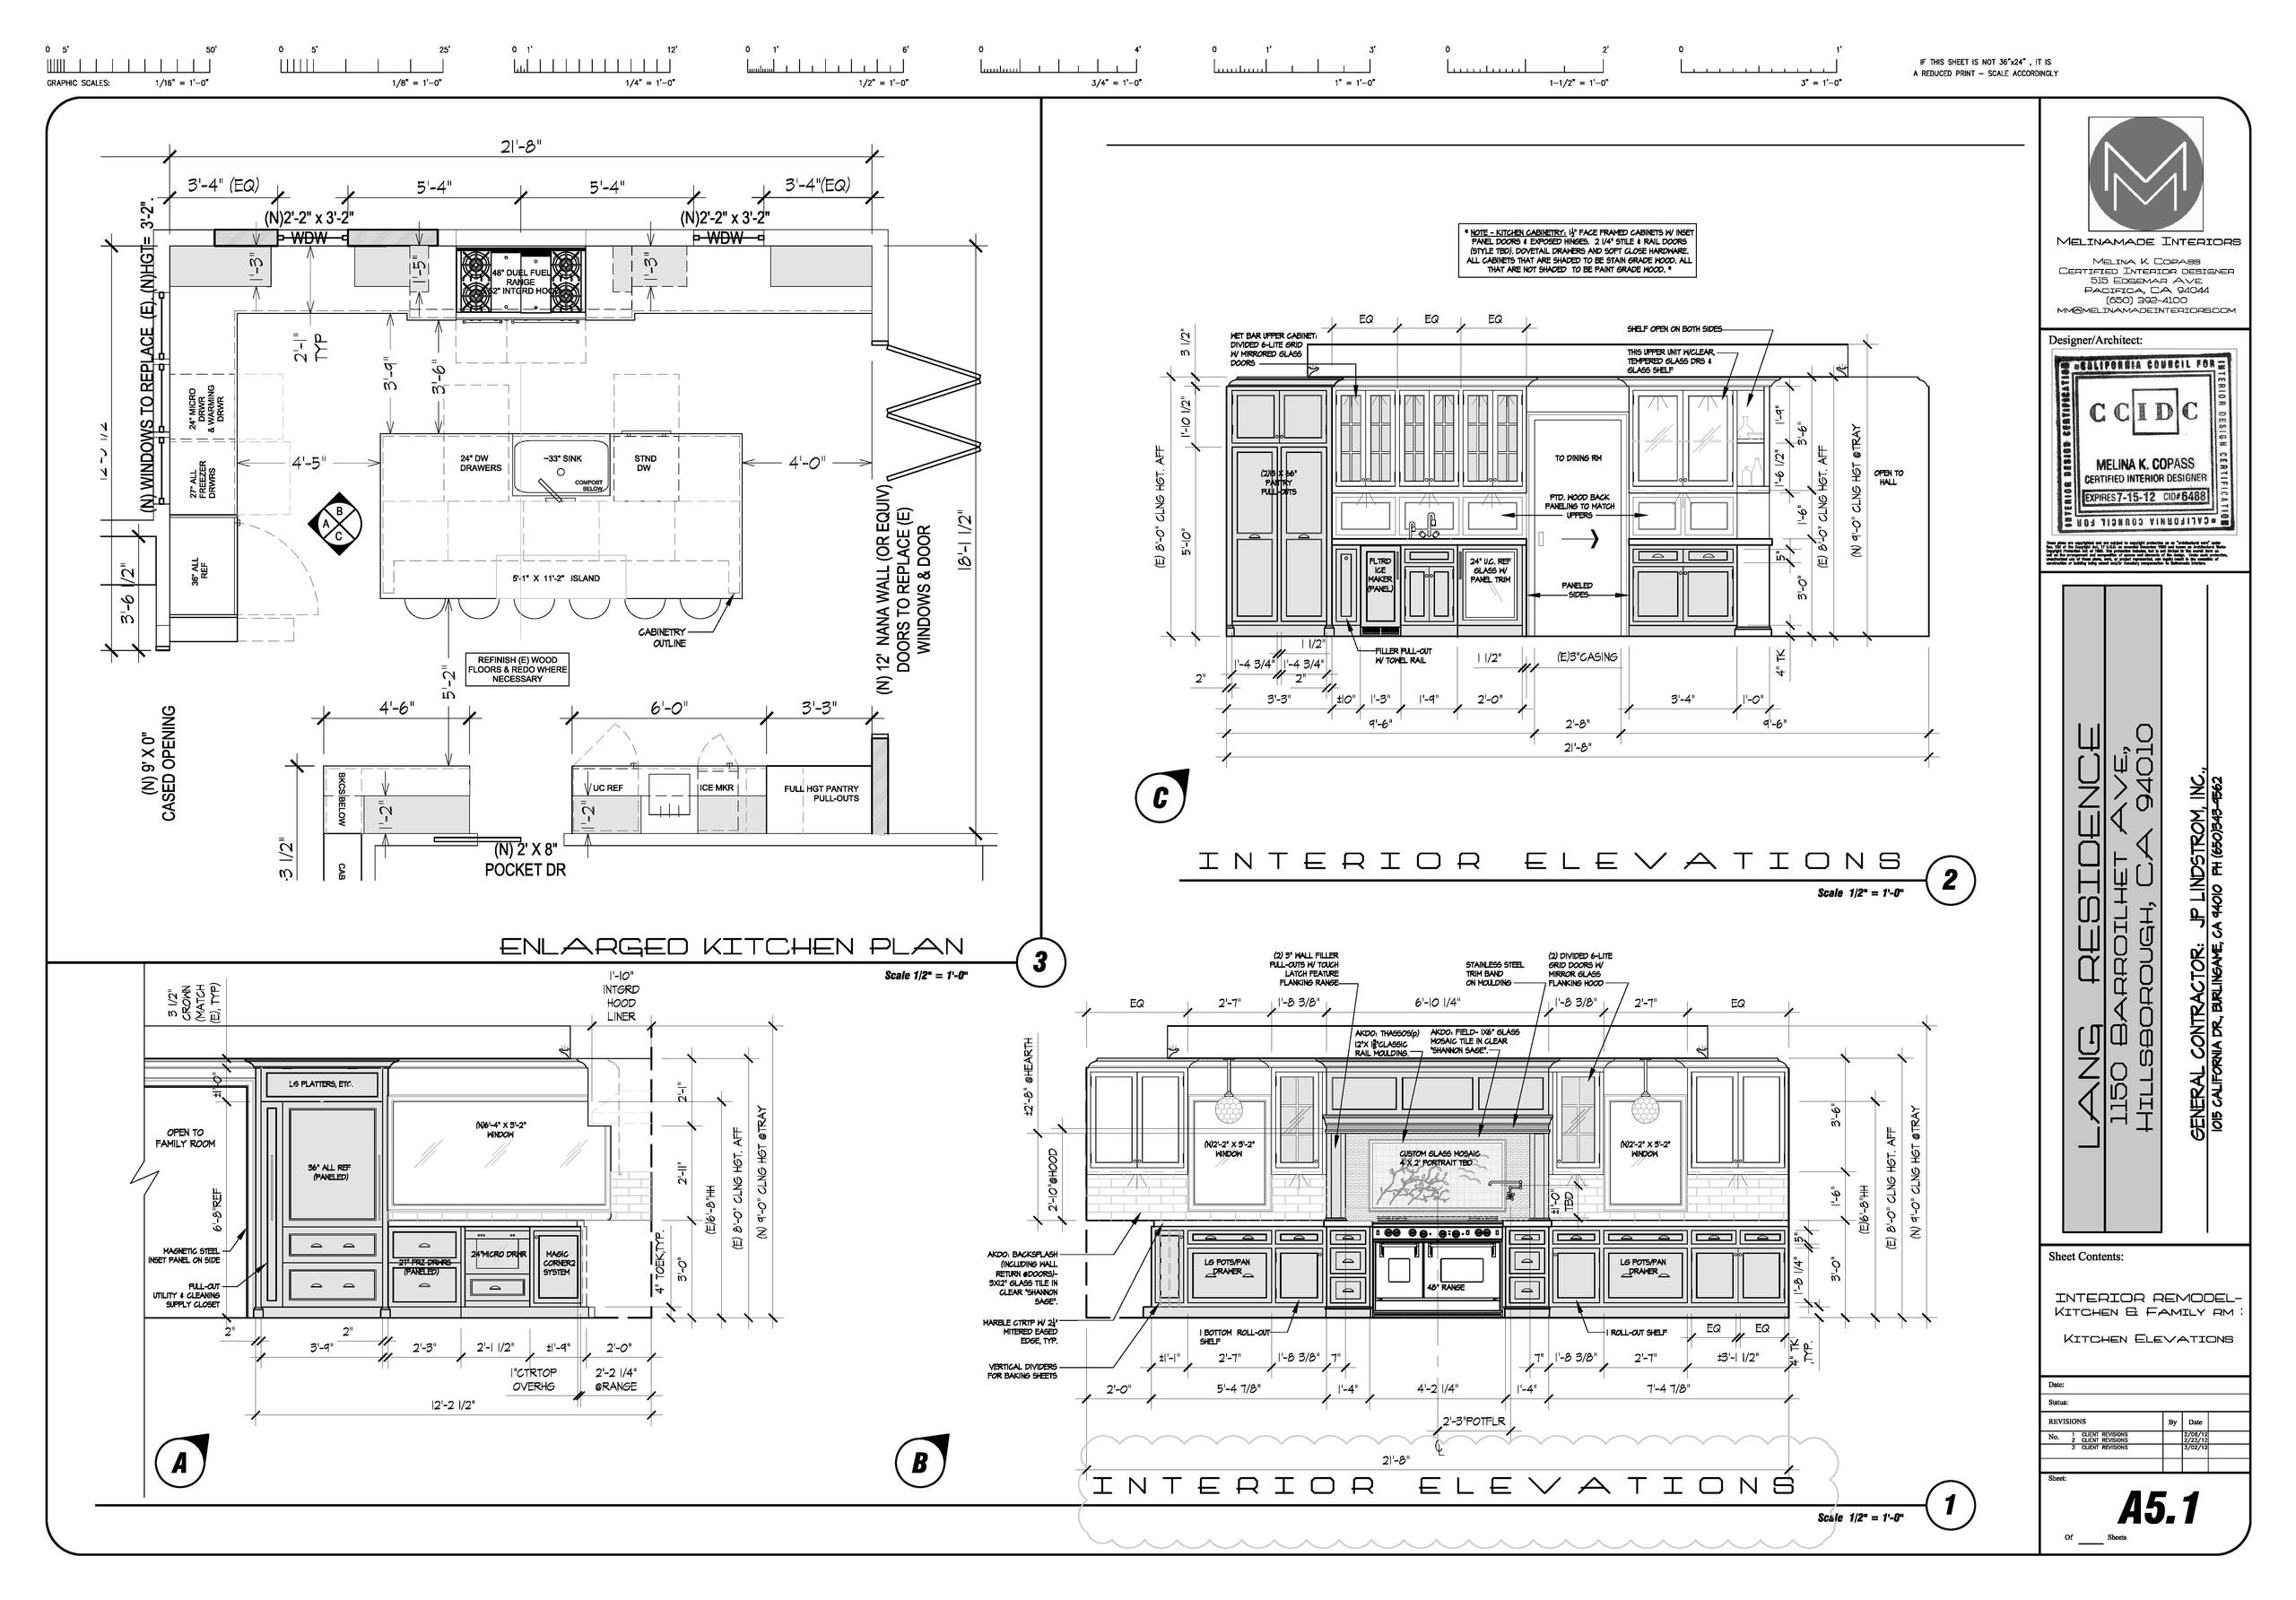 Traditional kitchen & family - floorplan & elevation drawings